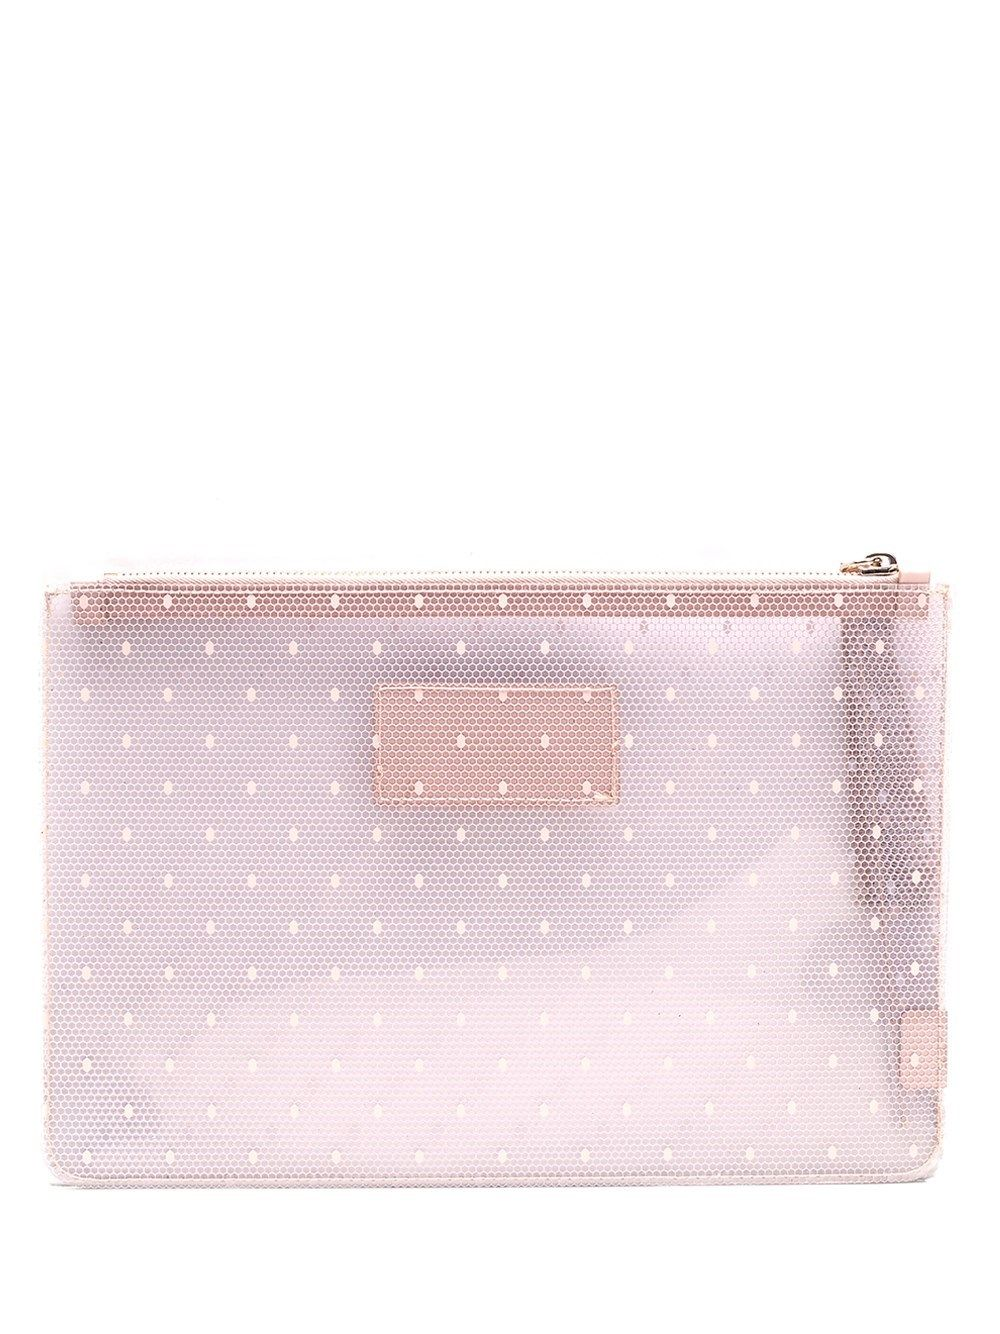 Red Valentino RED VALENTINO WOMEN'S PINK OTHER MATERIALS POUCH